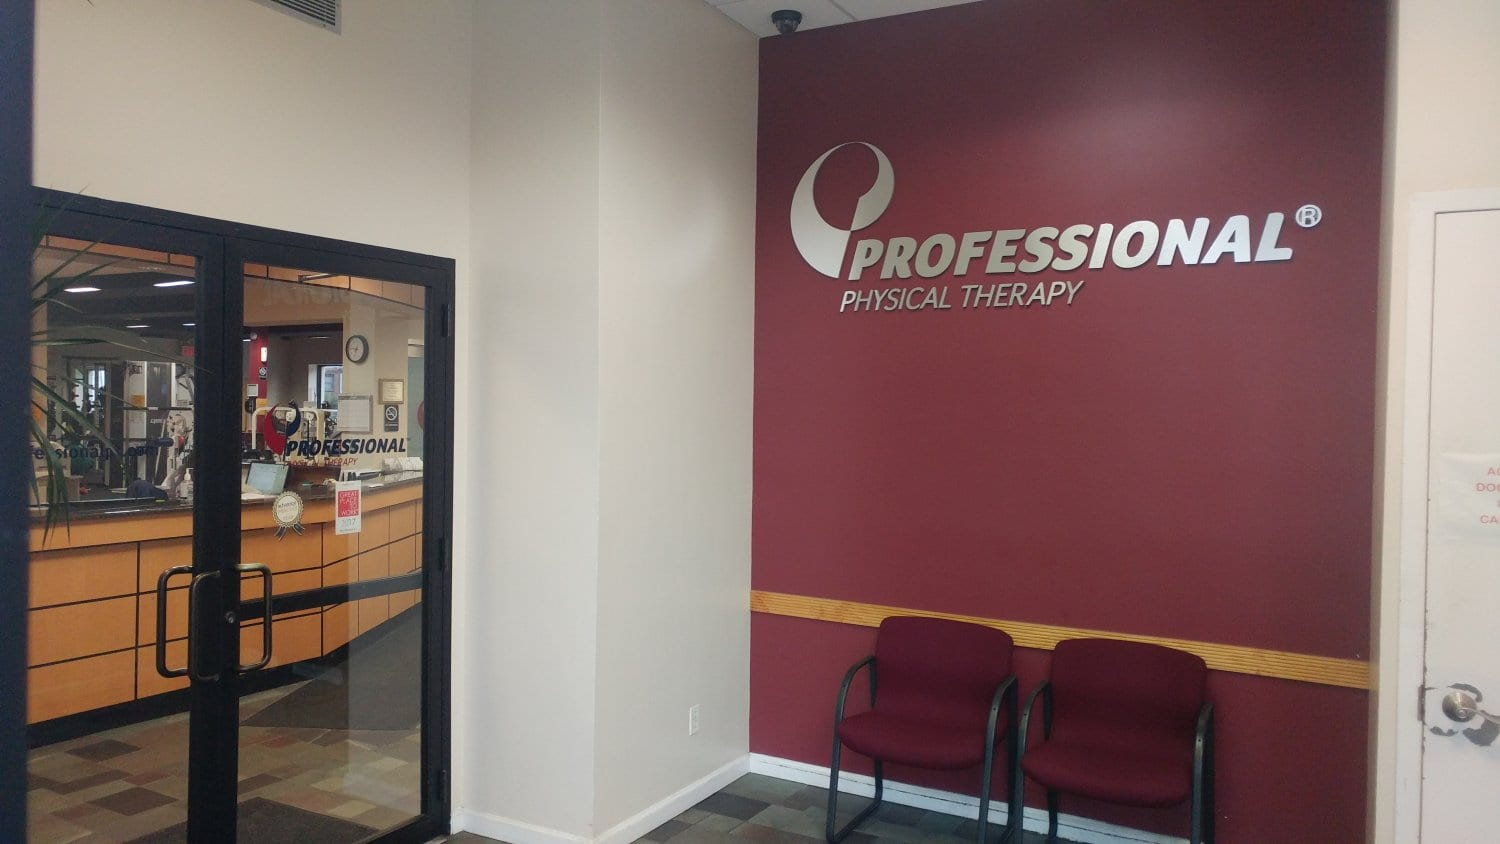 An image of the patient waiting area at our physical therapy clinic in Bayside Whitestone, New York.